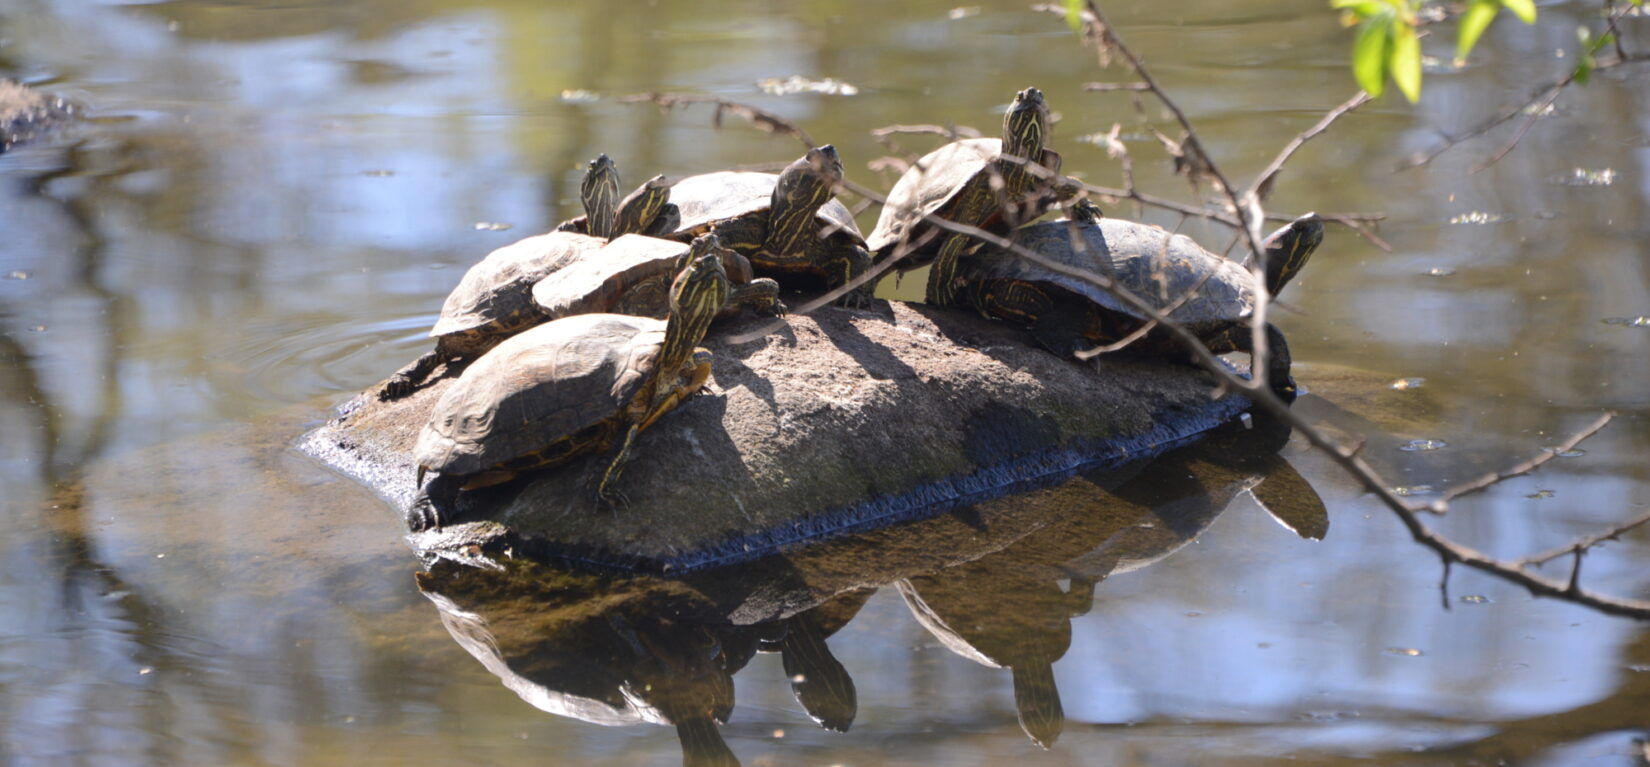 Turtles rest on a rock in Turtle Pond